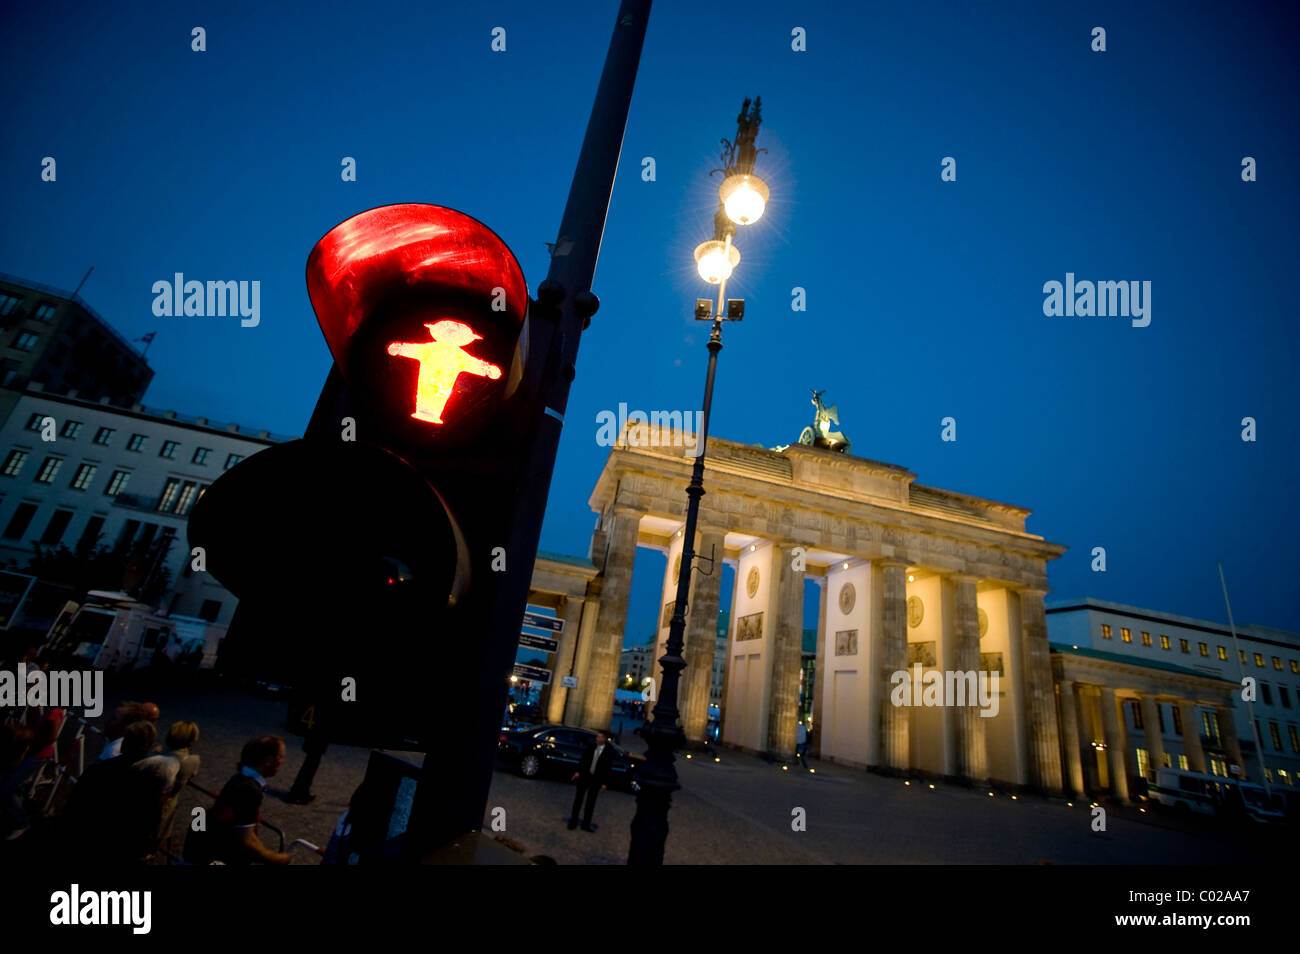 Brandenburg Gate with pedestrian traffic light, Berlin, Germany, Europe - Stock Image